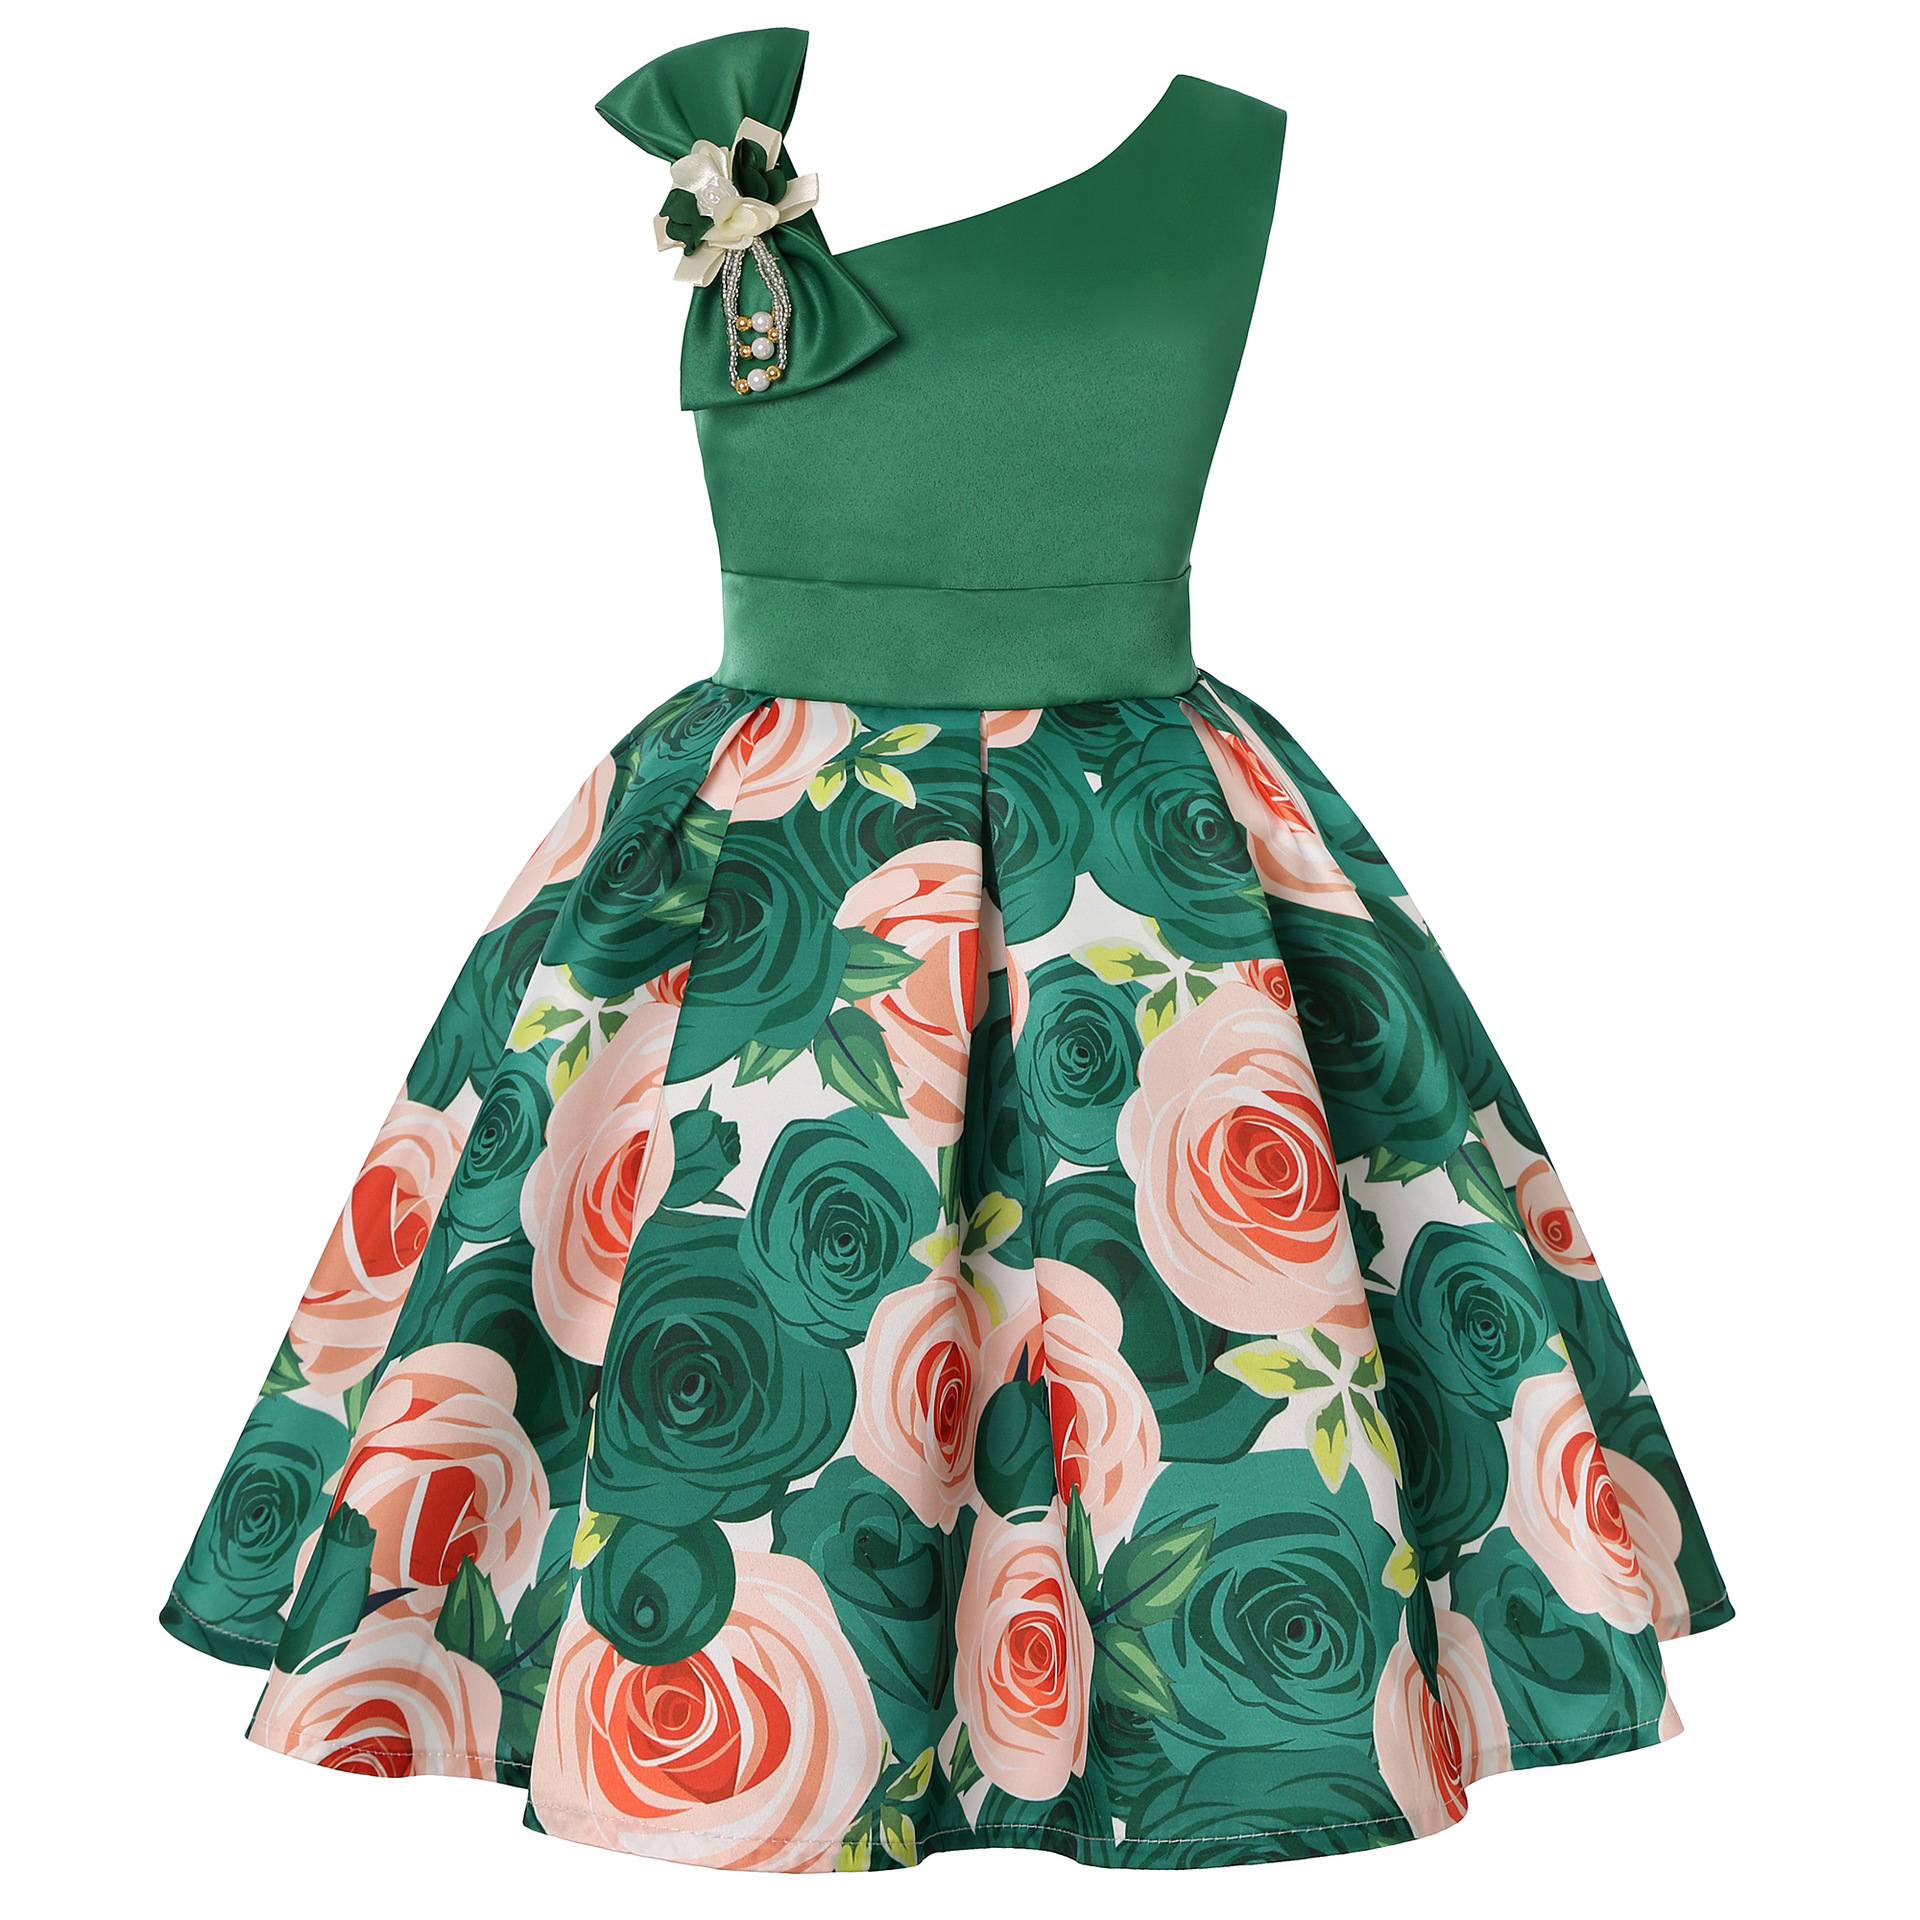 Girls Dress For Kids Clothes Flower One-shoulder Pageant Birthday Wedding Party Princess Children Dress 3 4 5 6 7 8 9 years 4